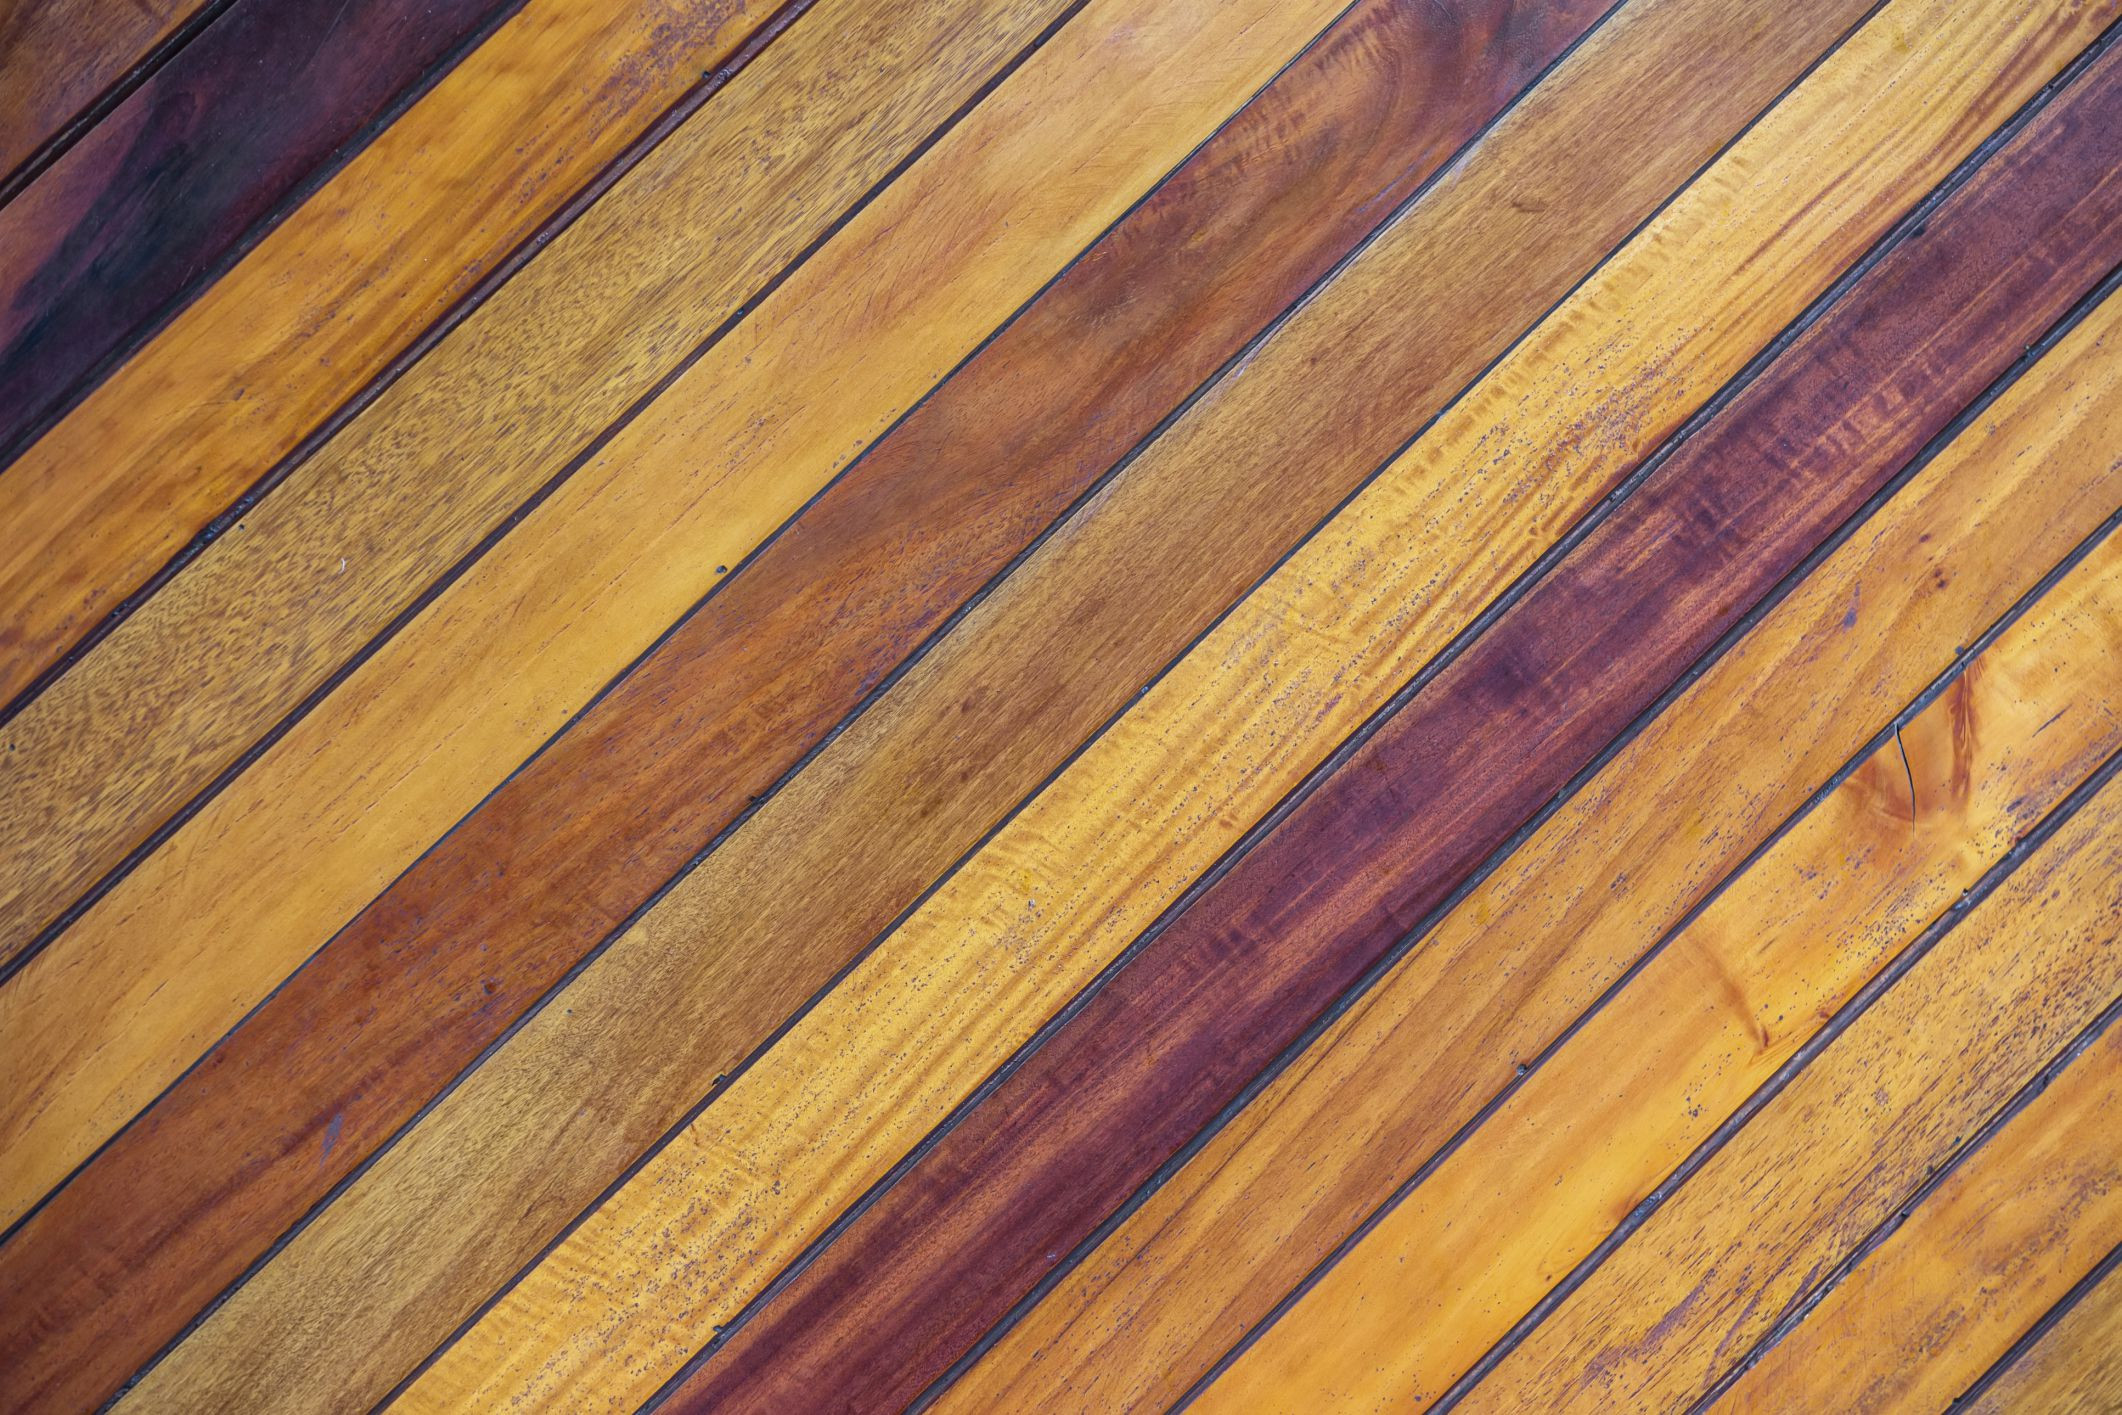 20 Perfect How to Fix Loose Hardwood Floor Boards 2021 free download how to fix loose hardwood floor boards of subfloor repair and floor leveling techniques inside uneven wooden flooring 170024909 56a4a1853df78cf7728353ab